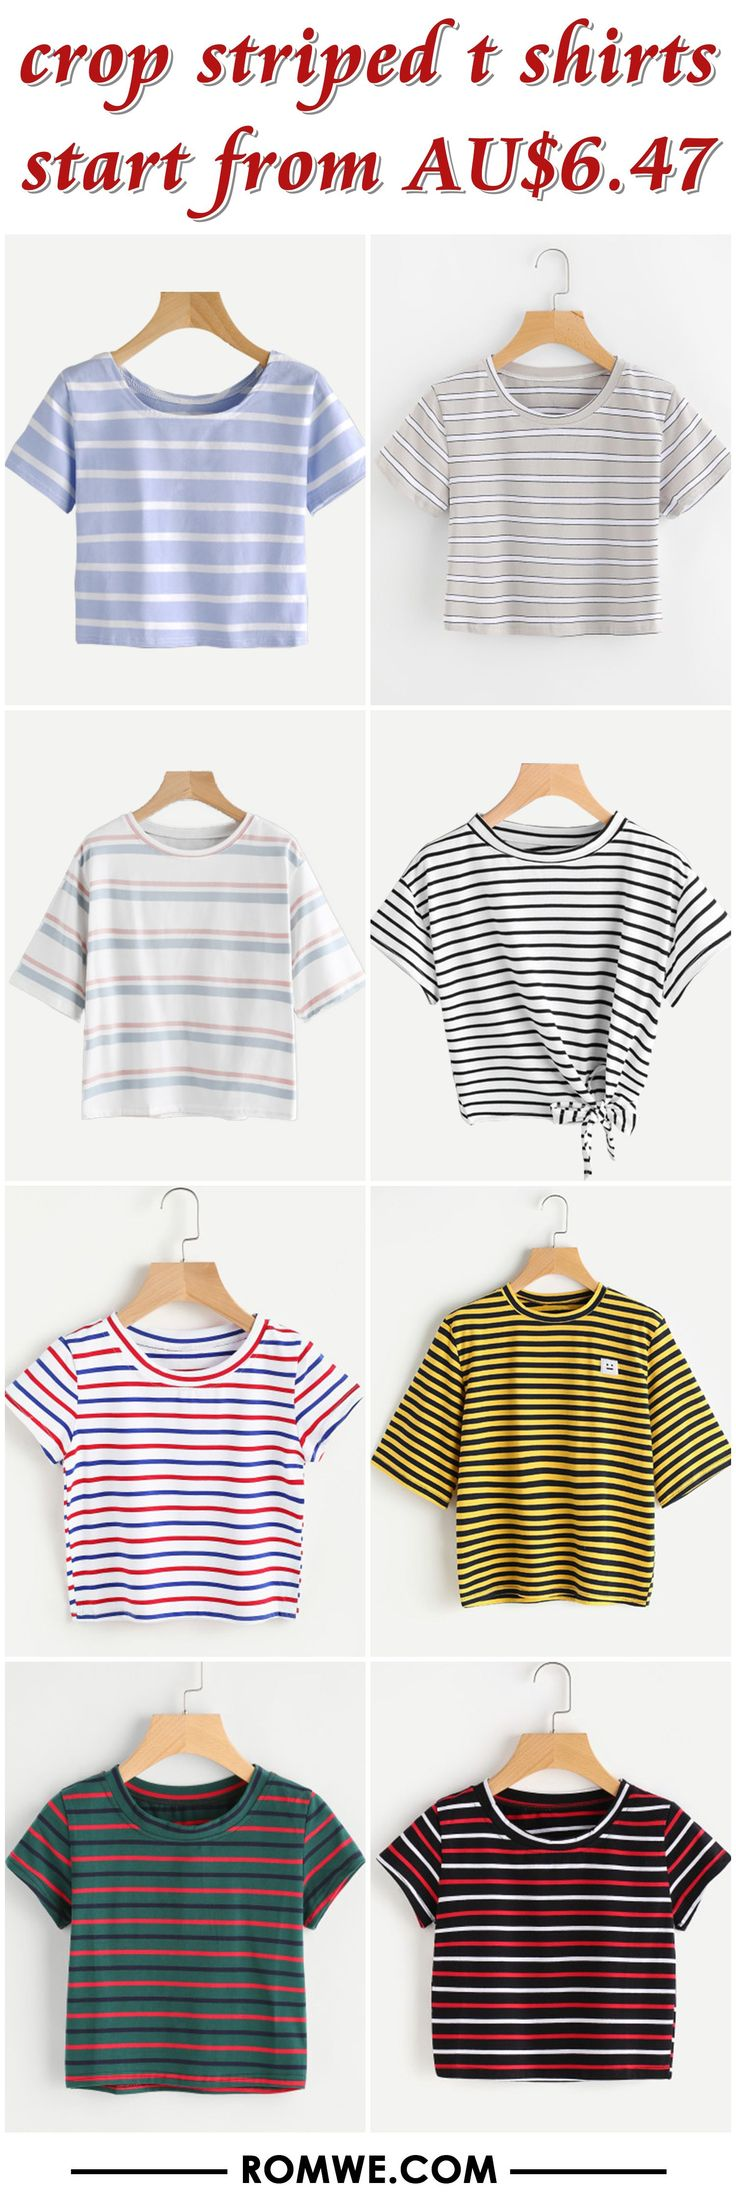 crop striped t shirts from AU$6.47